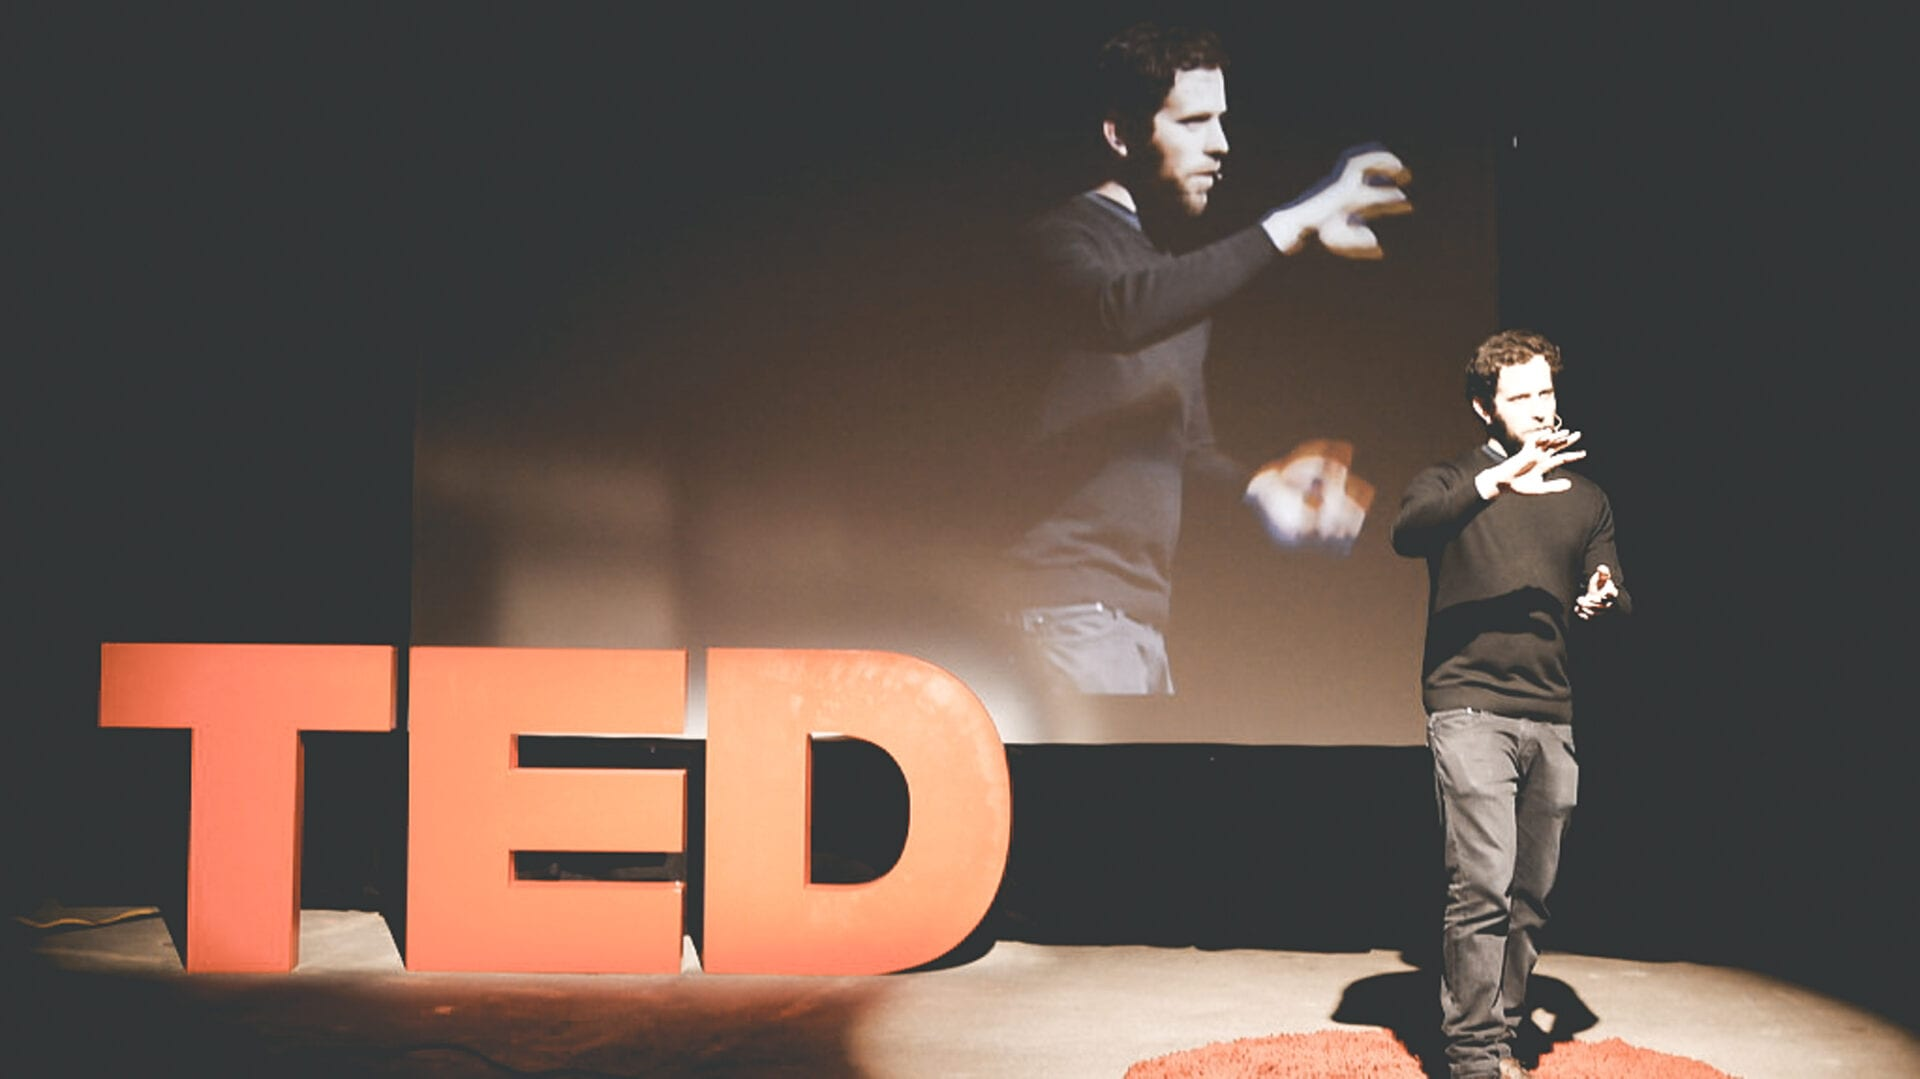 ted-talk header